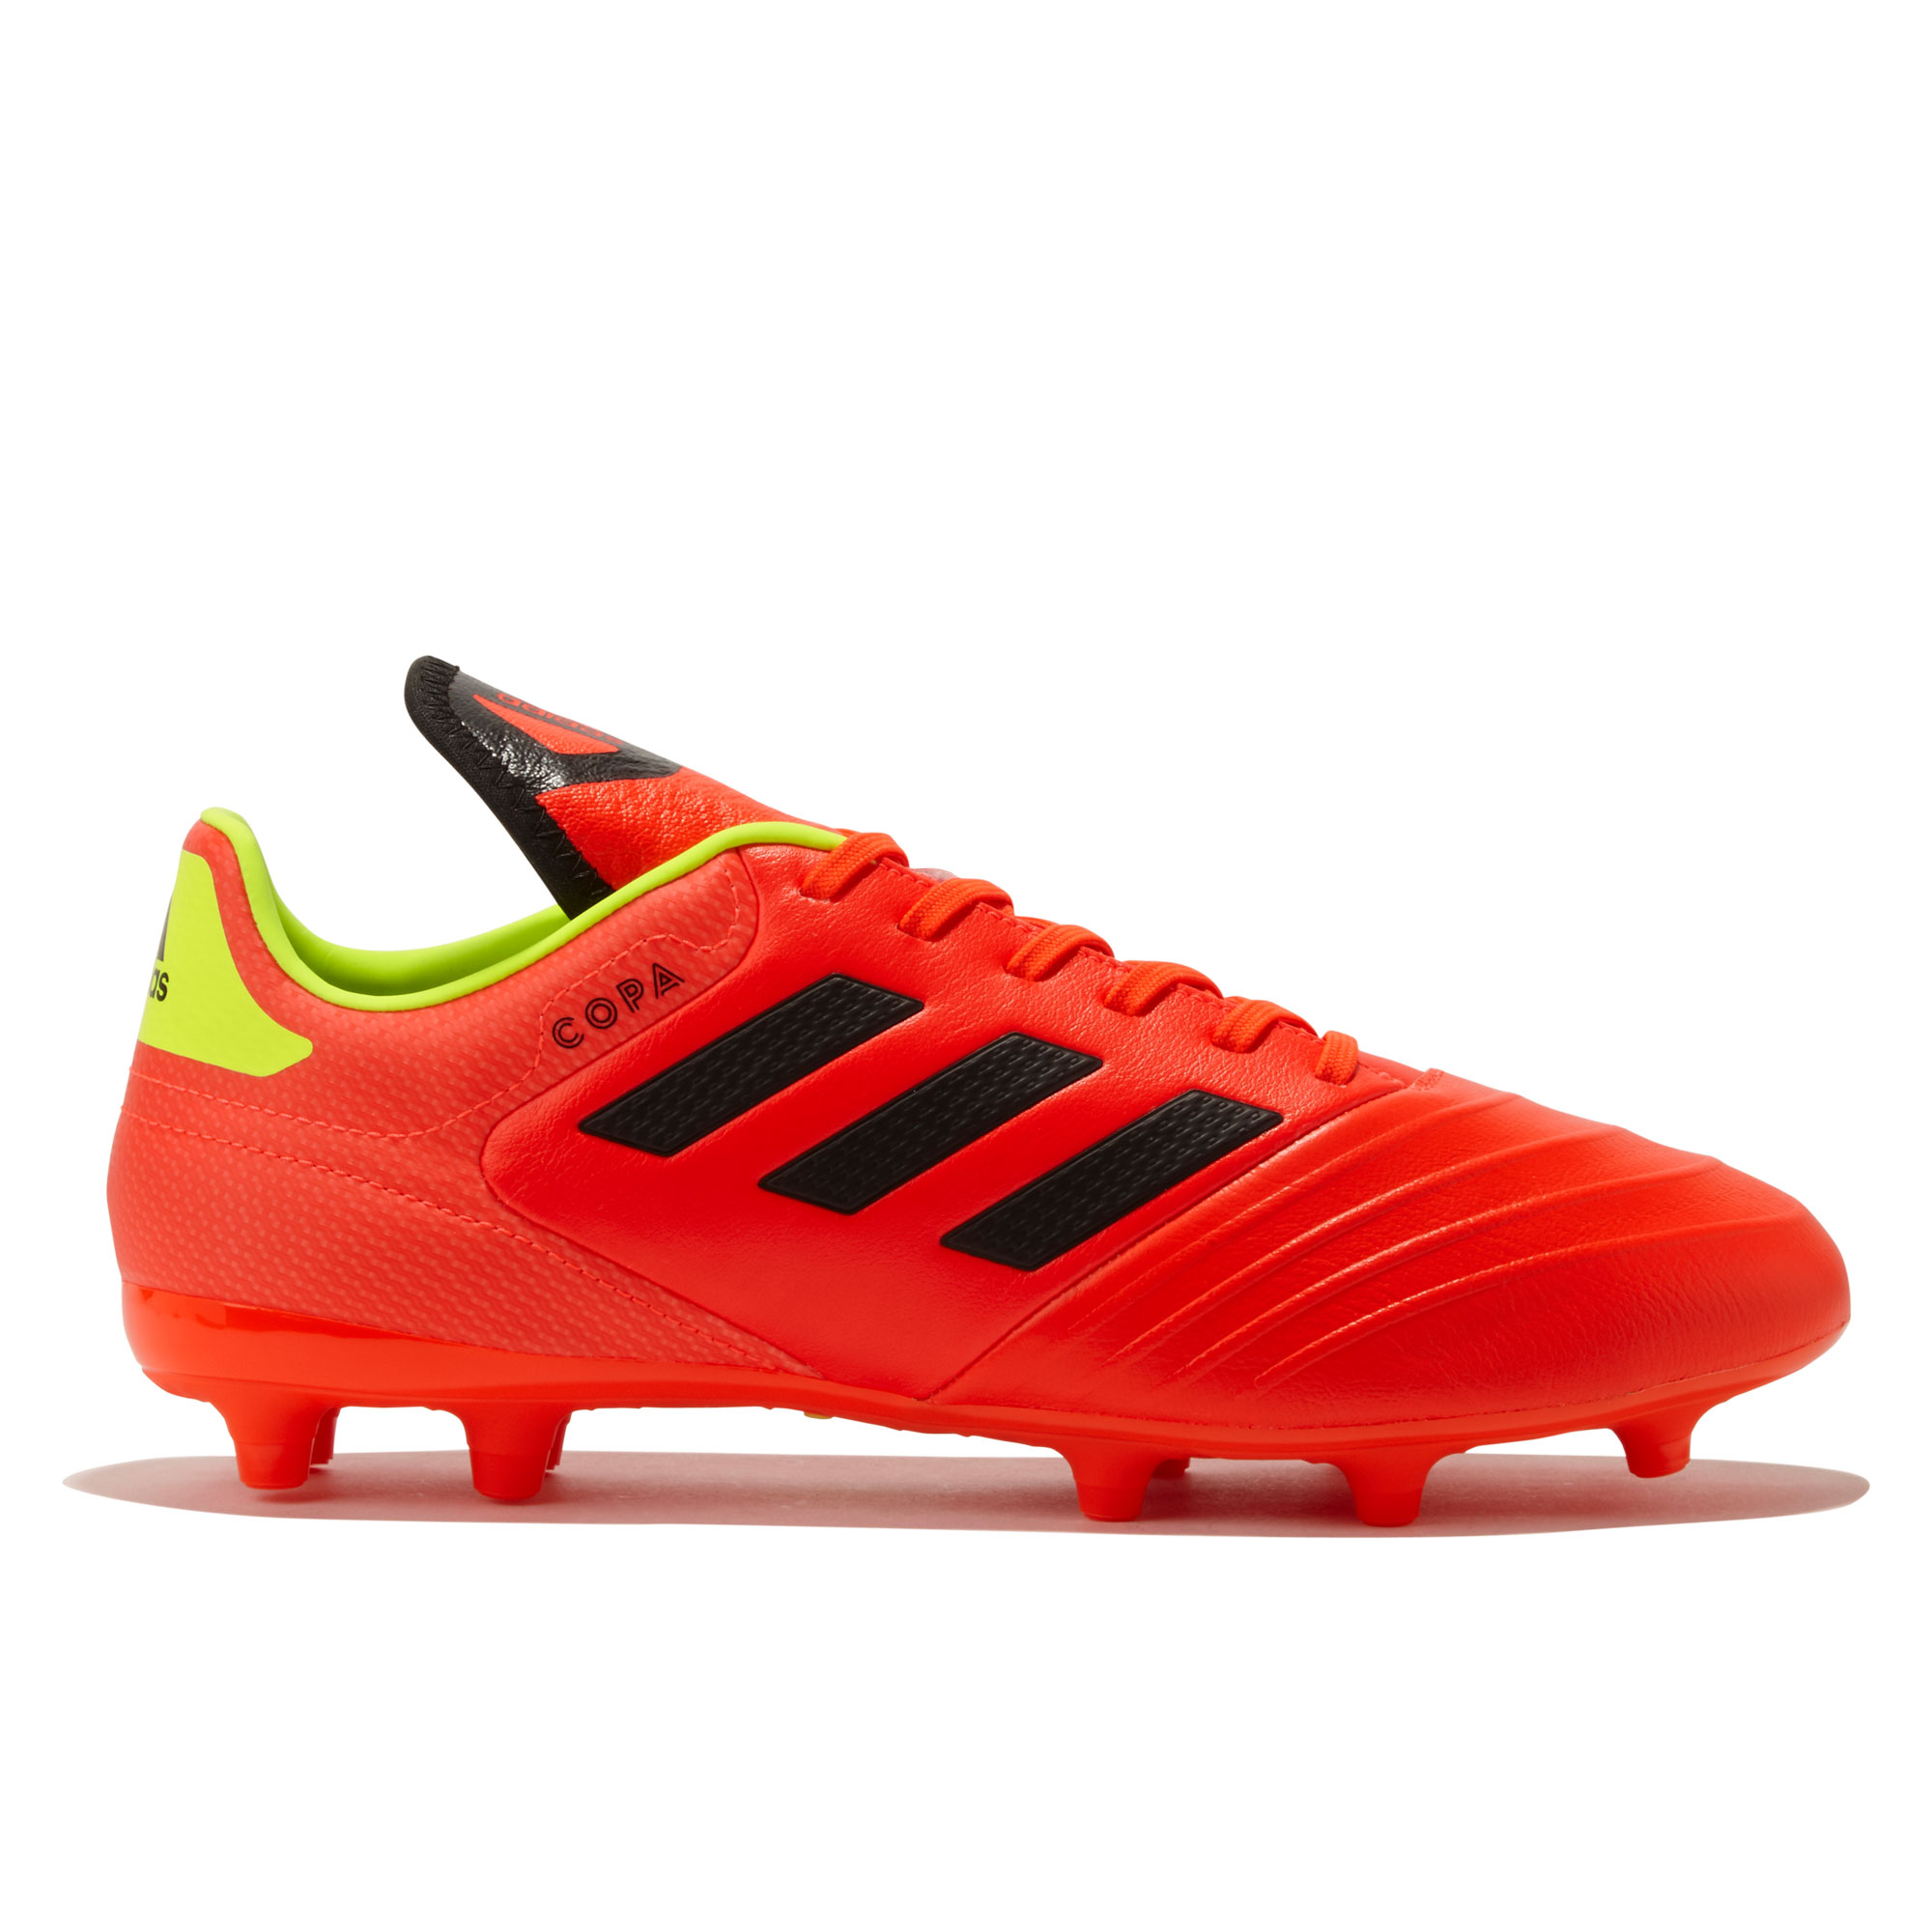 Image of adidas Copa 18.3 Firm Ground Football Boots - Red